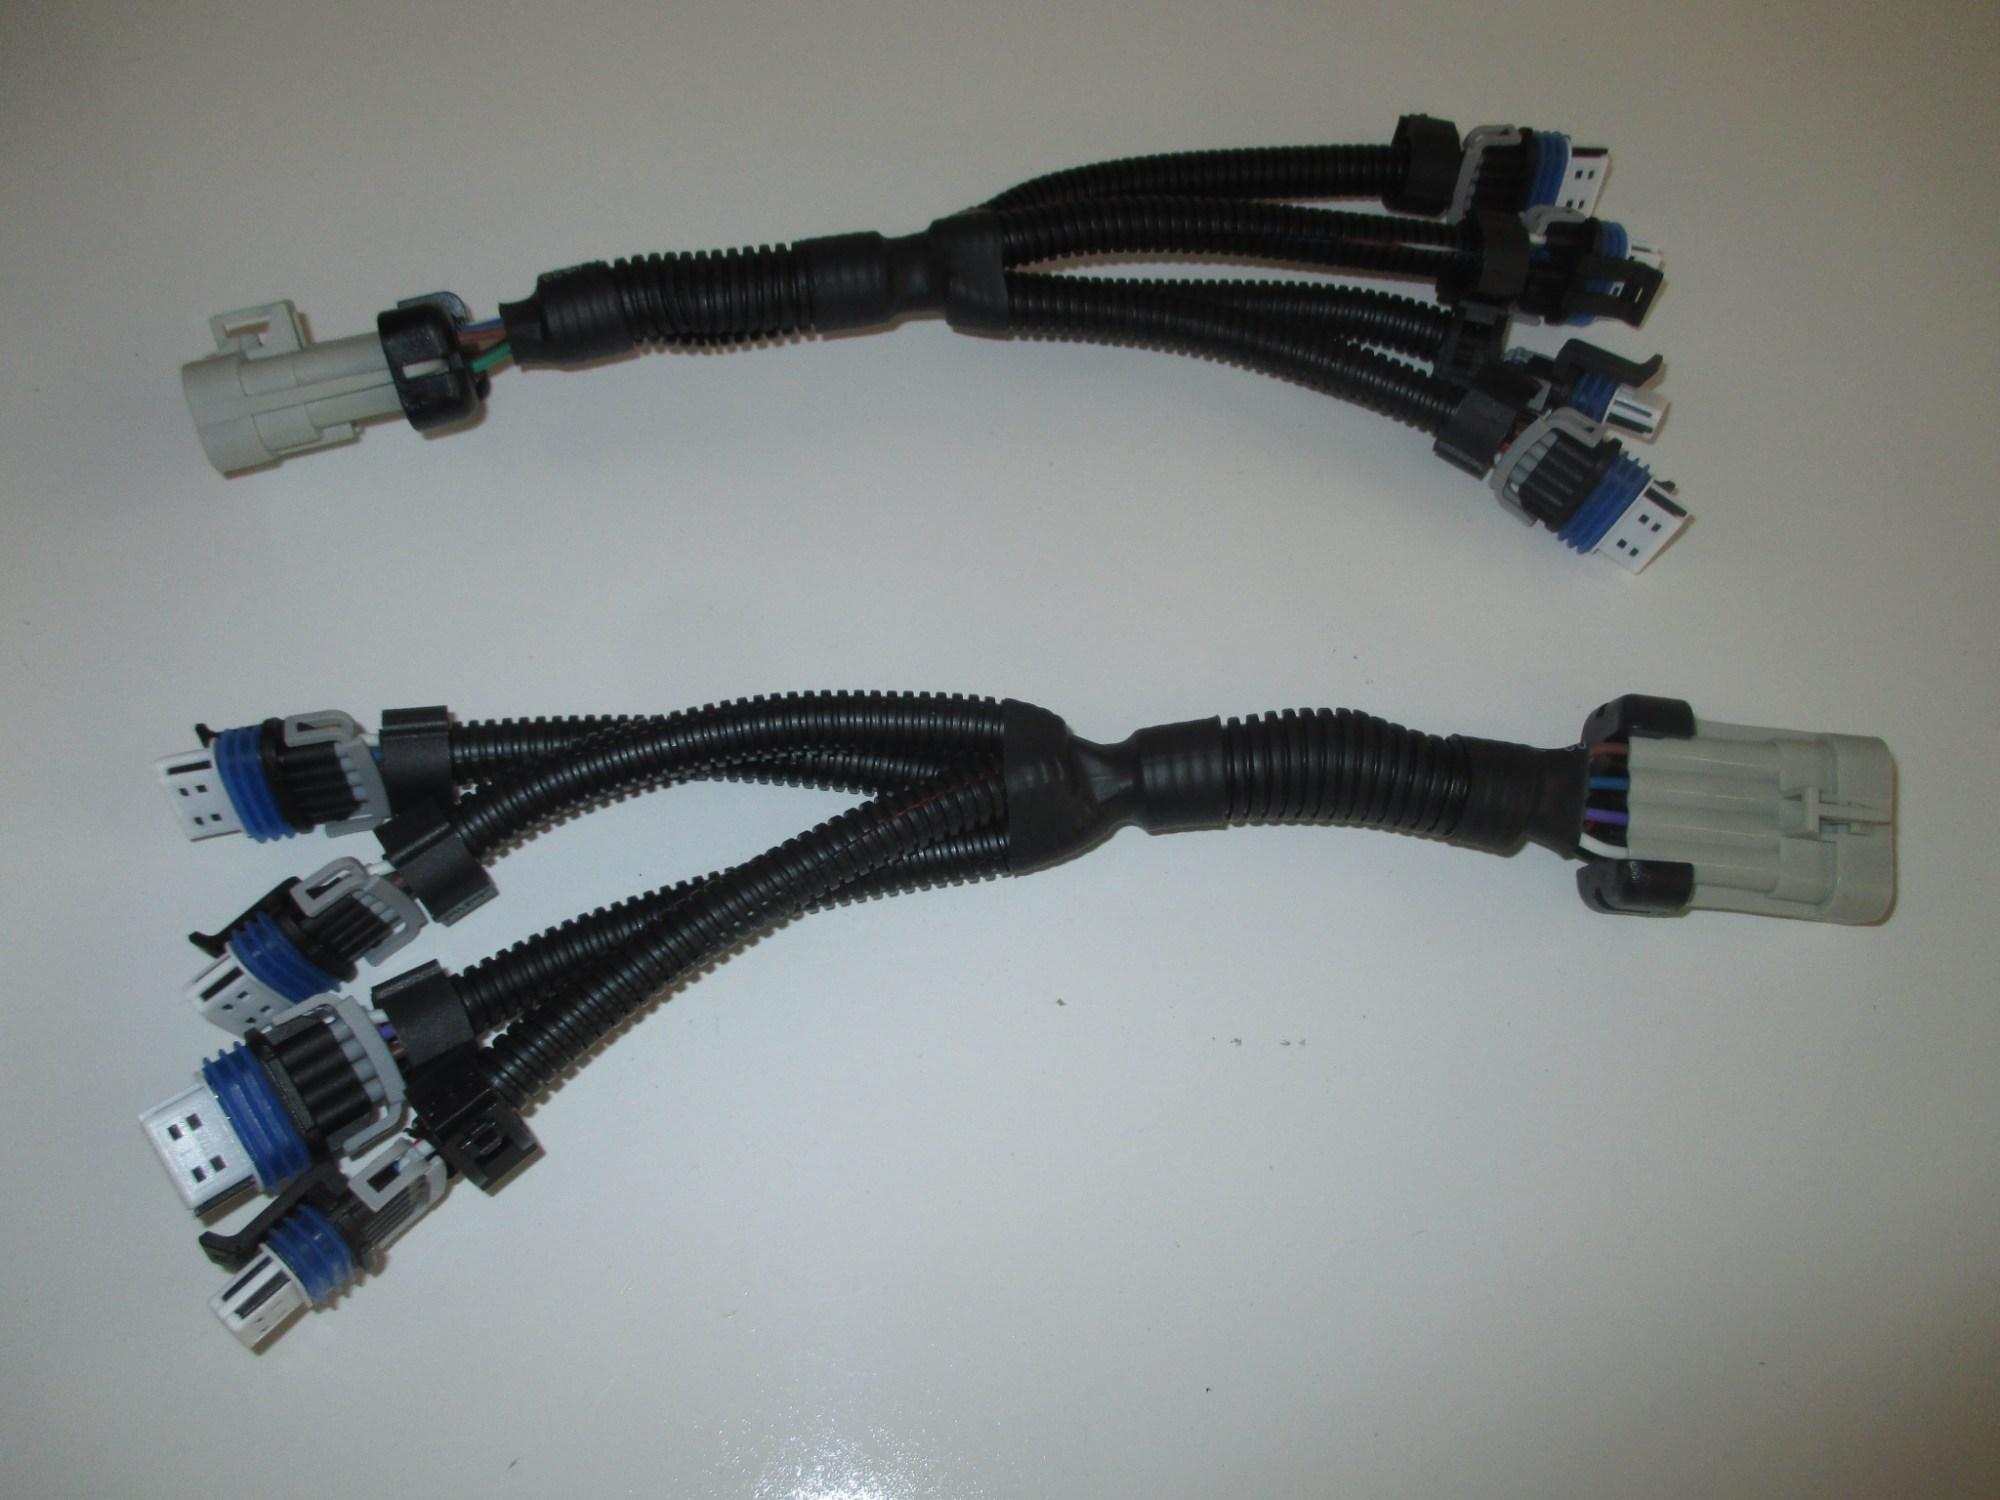 hight resolution of ls2 ls7 lq4 lq9 ignition coil harness set for relocation brackets for 8 coil packs